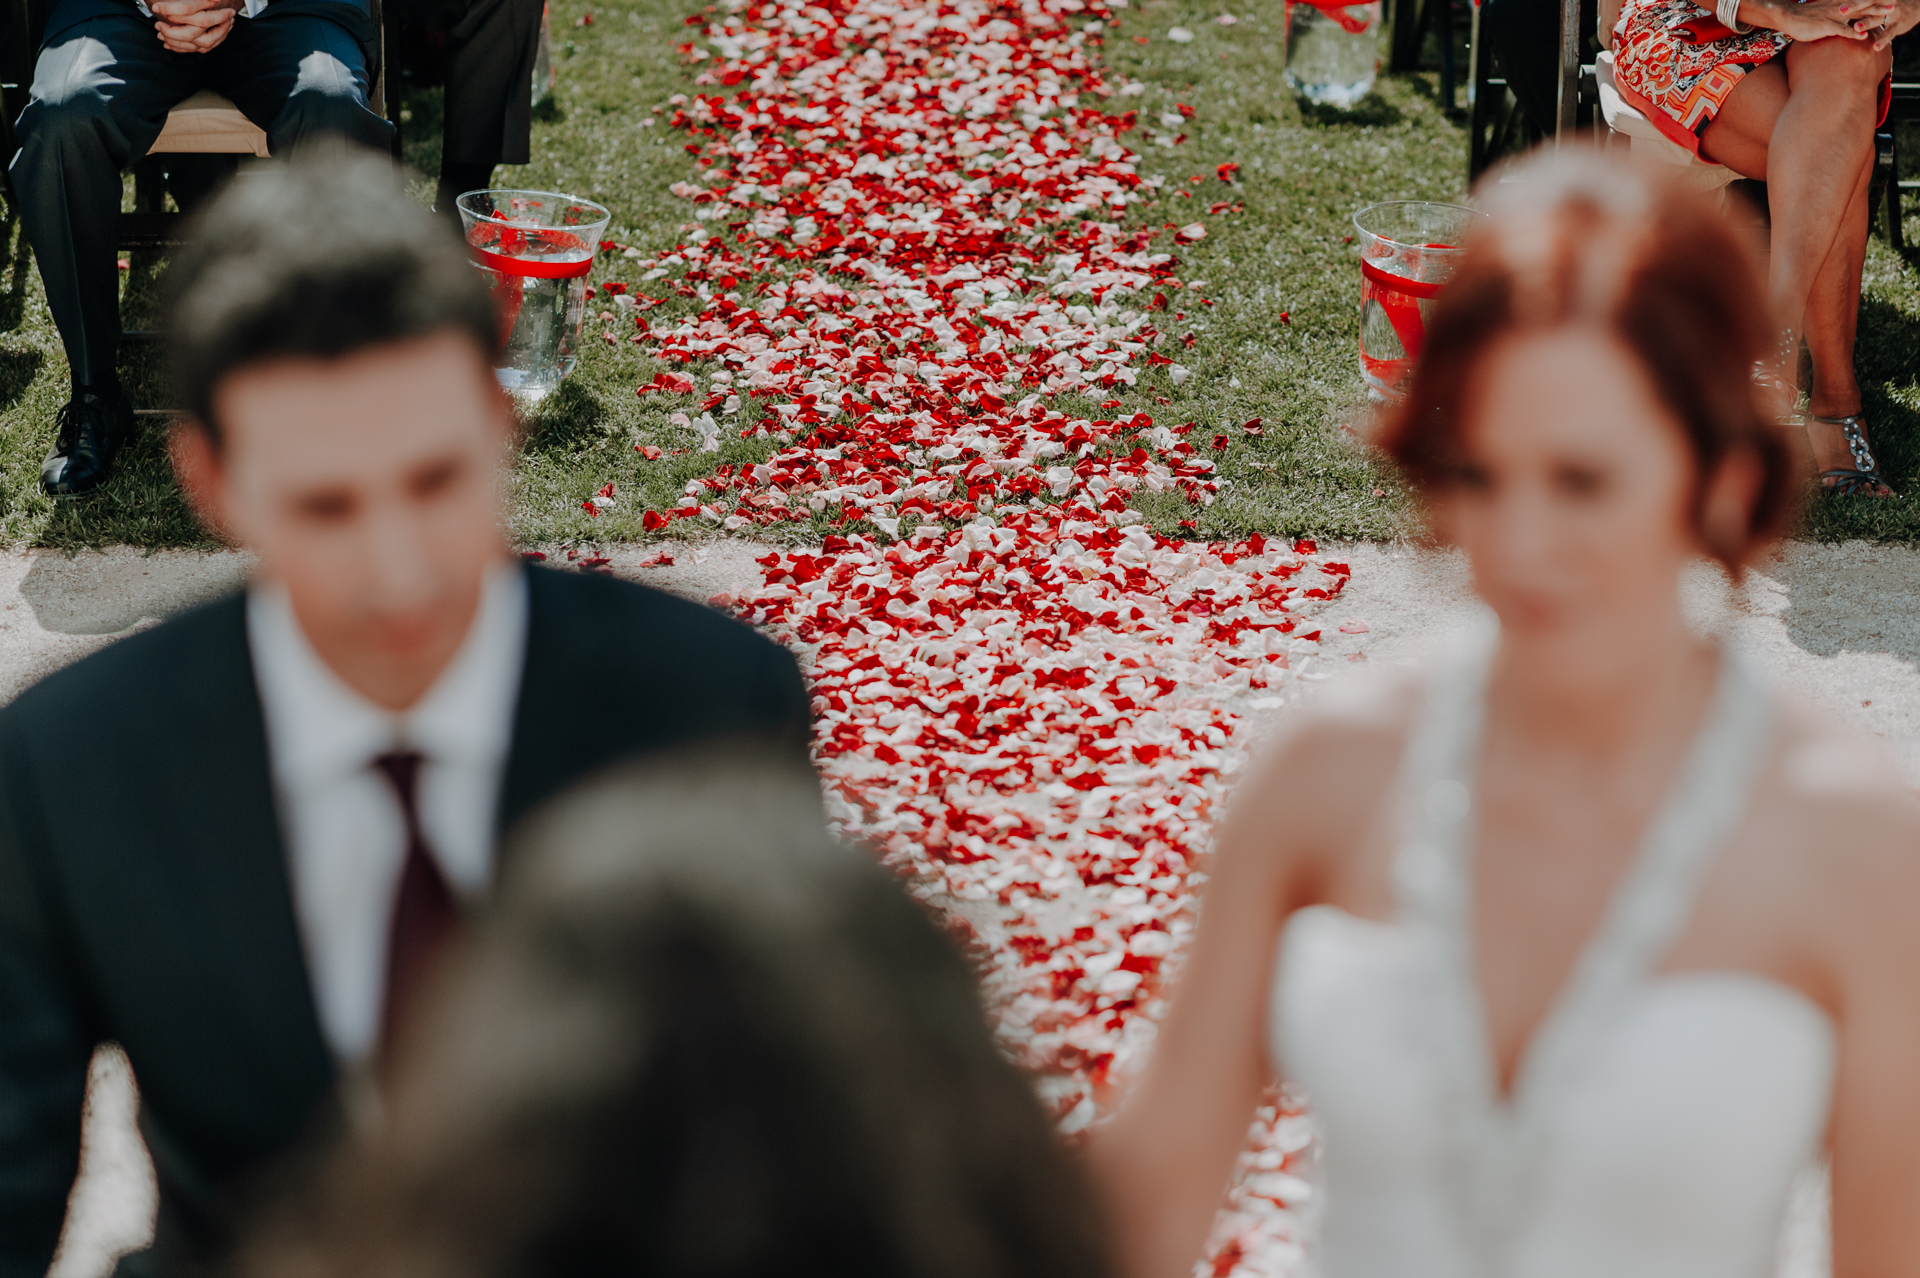 Quinta do Valle do Riacho Wedding Event Photographer | The vibrant aisle made solely of red and white rose petals